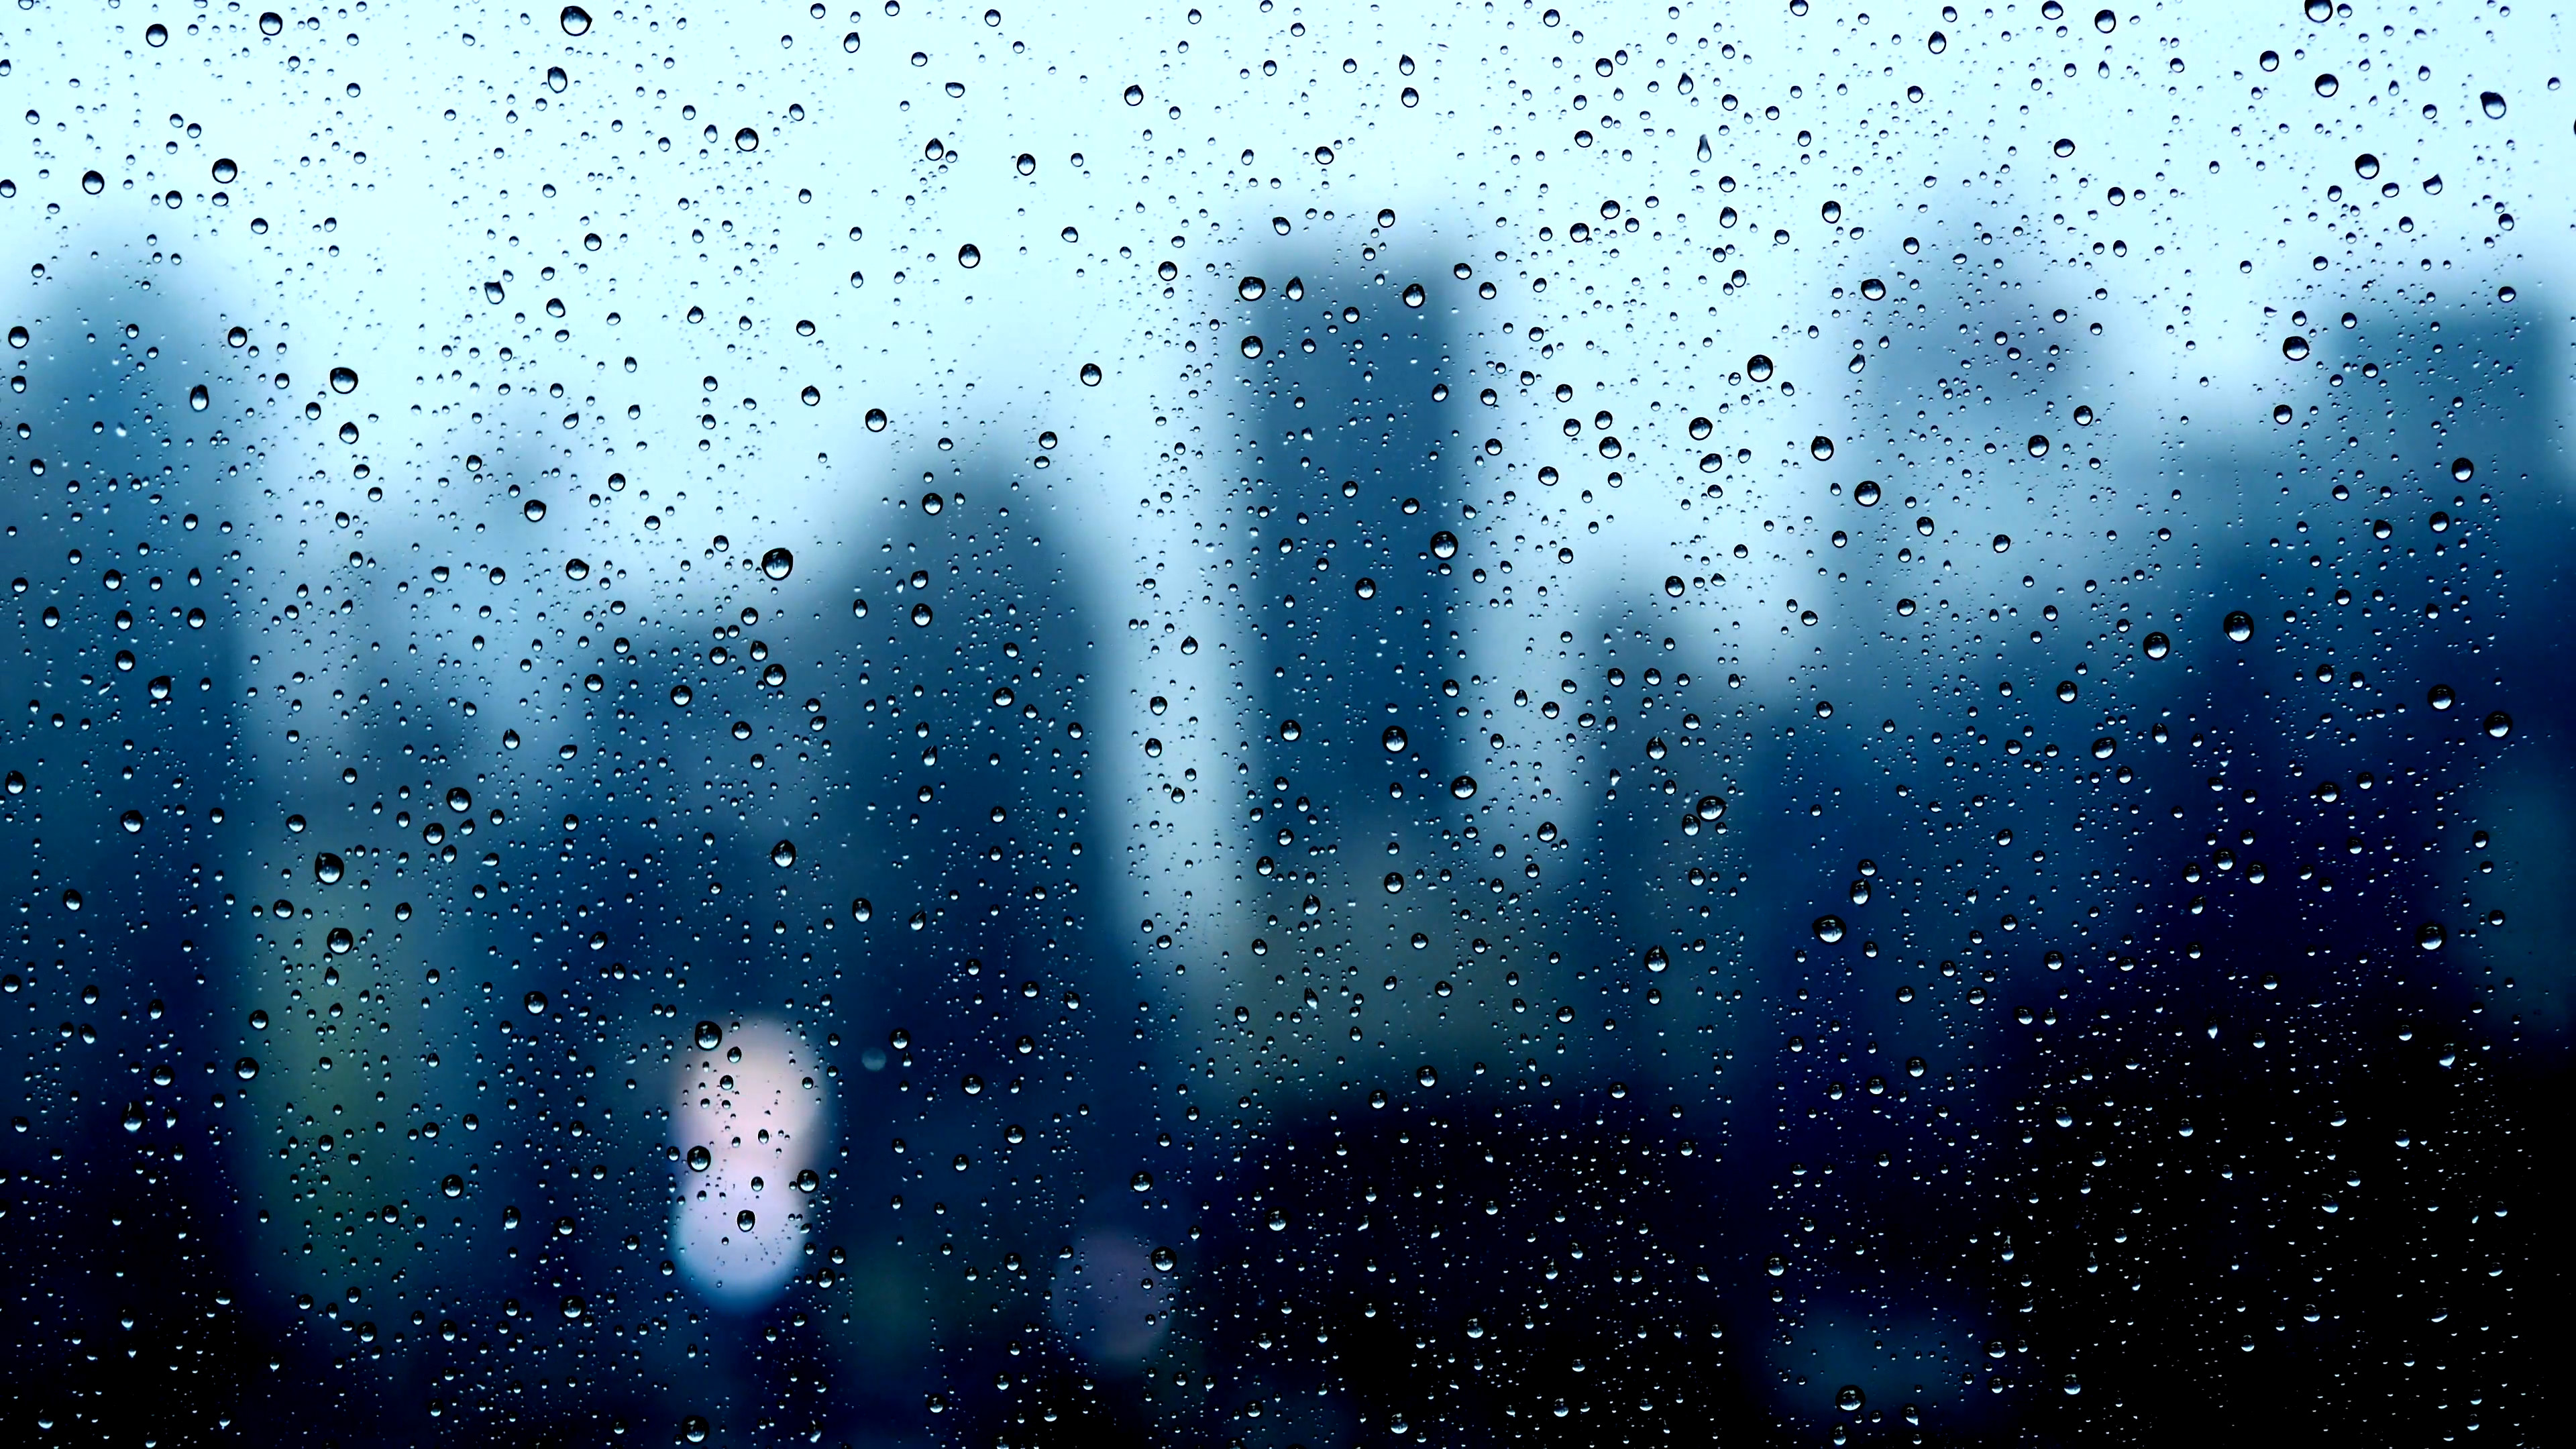 Wallpaper Of Alone Girl In Rain Sad Backgrounds 62 Images